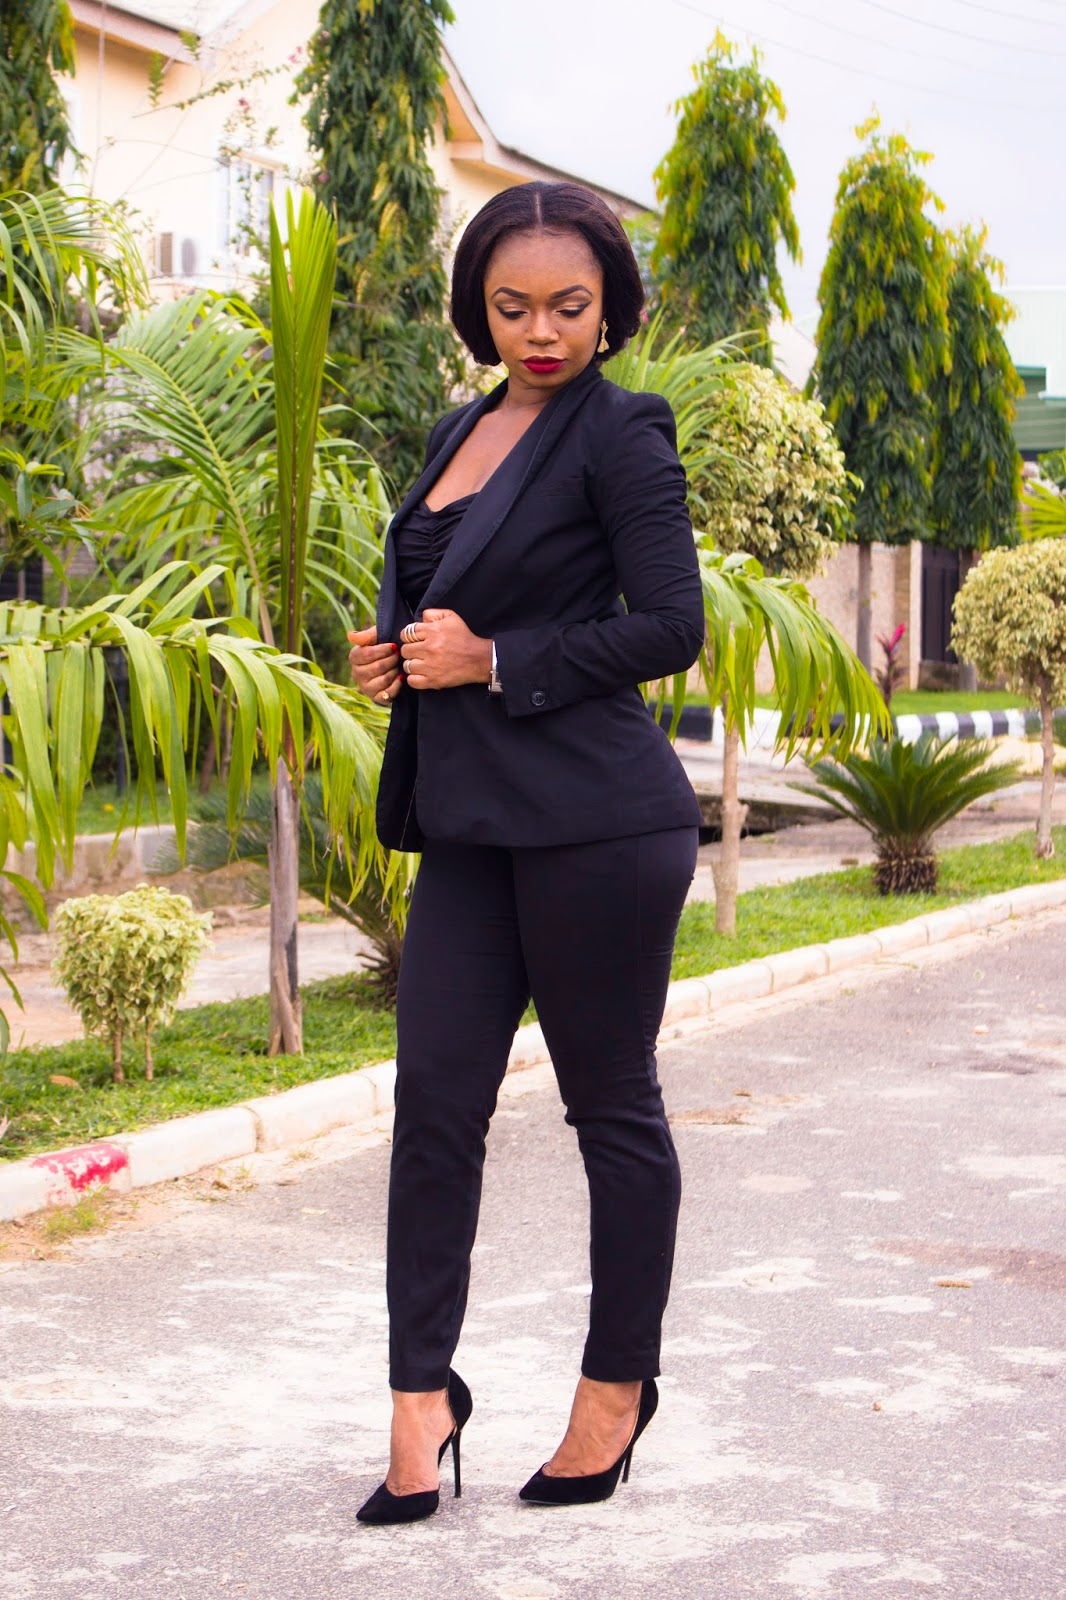 HnM Blazers and Pants and Black Boohoo Court Shoes = Pant suit as work wear